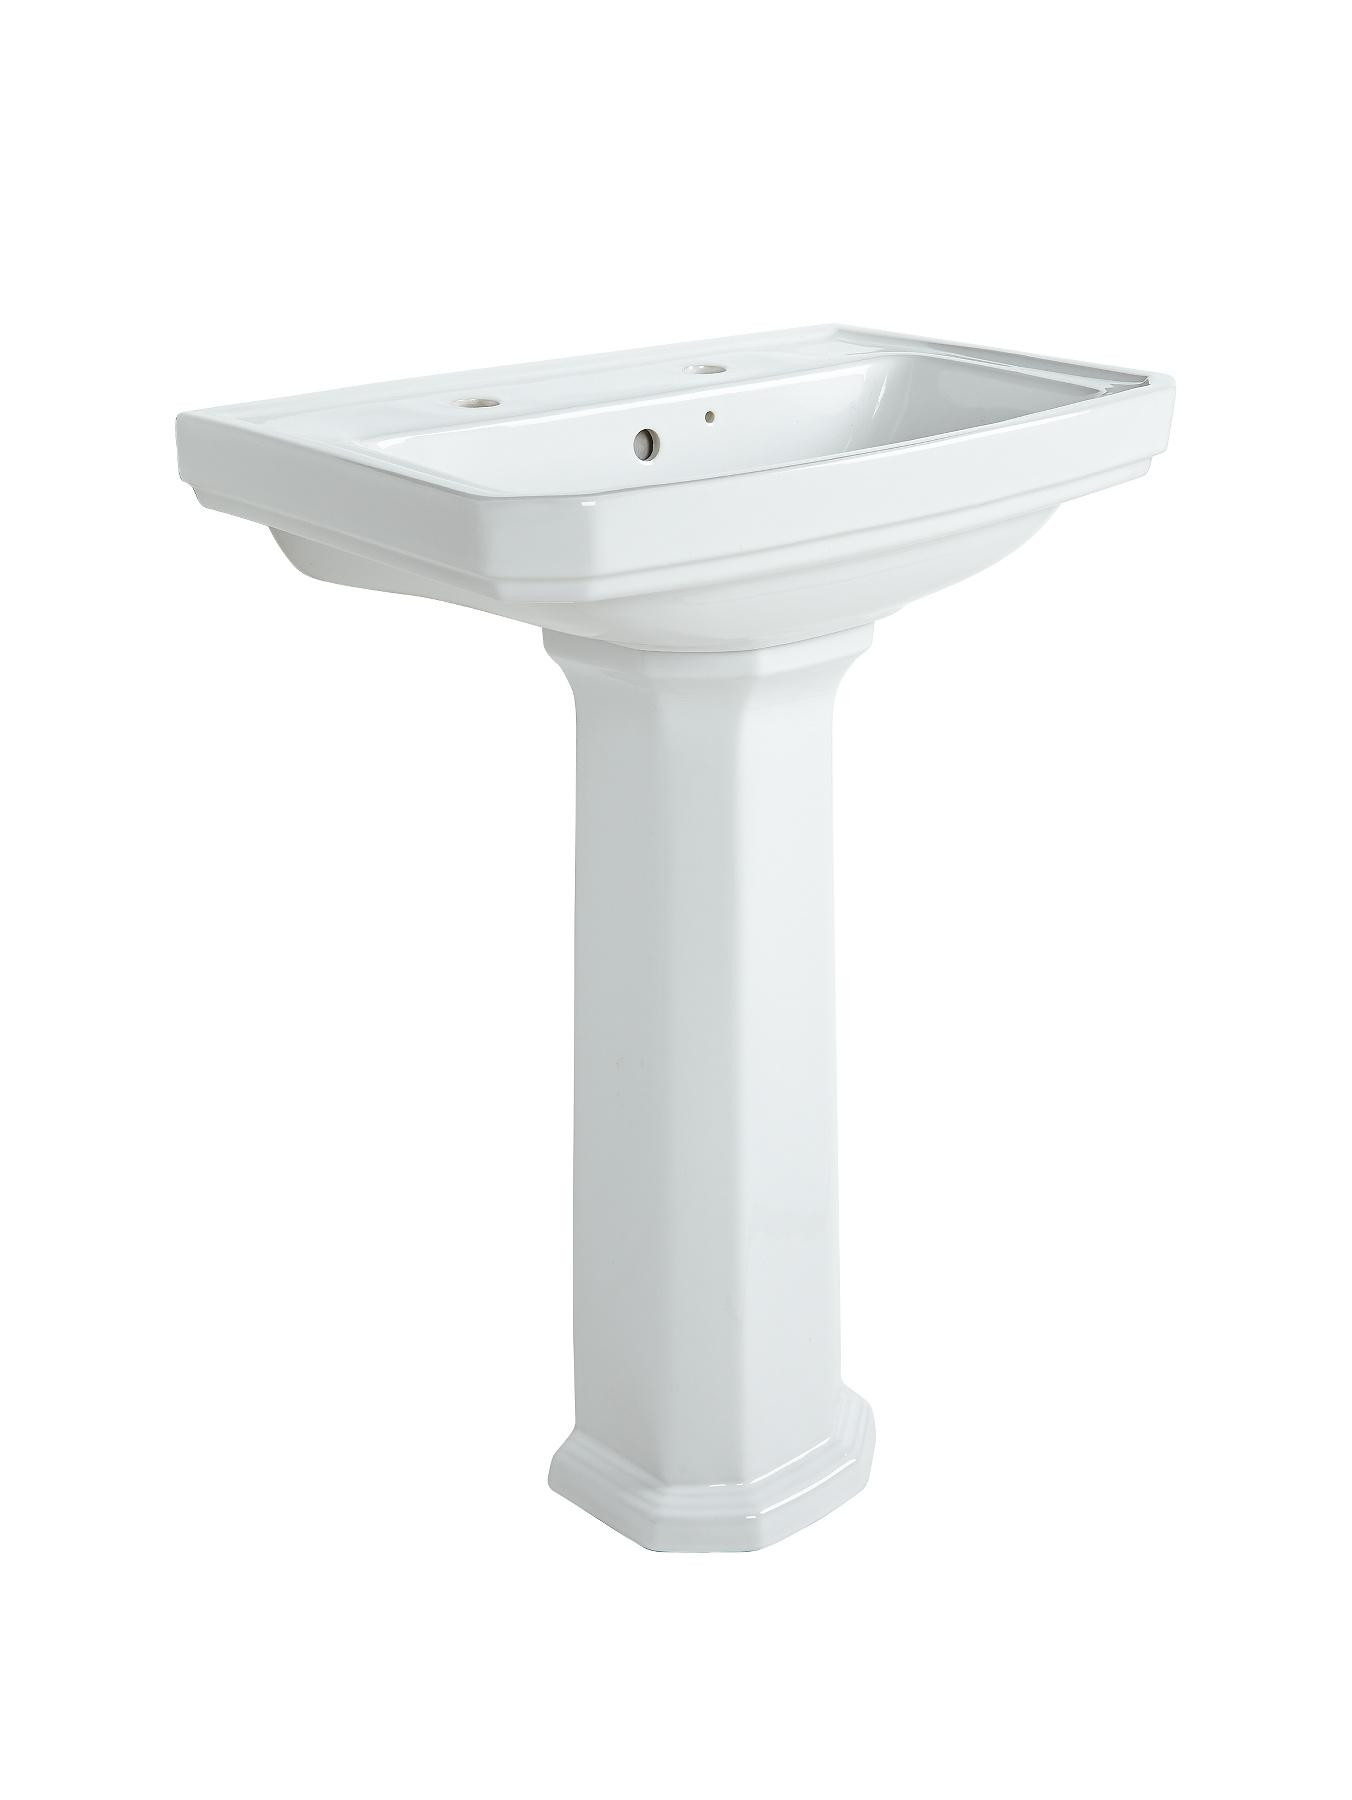 Elegance 2 Tap Basin and Full Pedestal